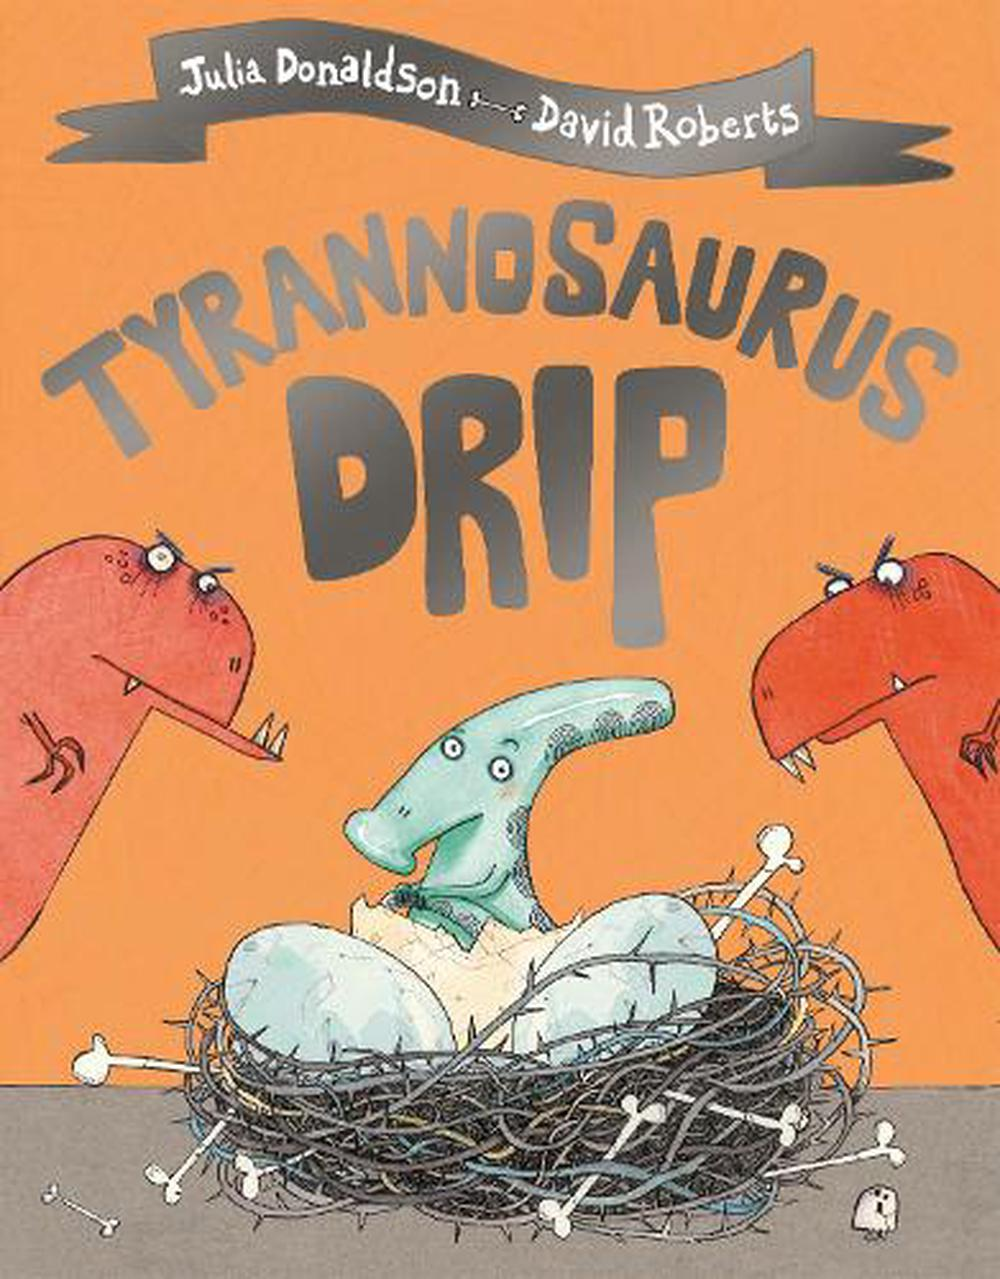 Tyrannosaurus Drip by Julia Donaldson, Paperback, 9781509892433 | Buy  online at The Nile